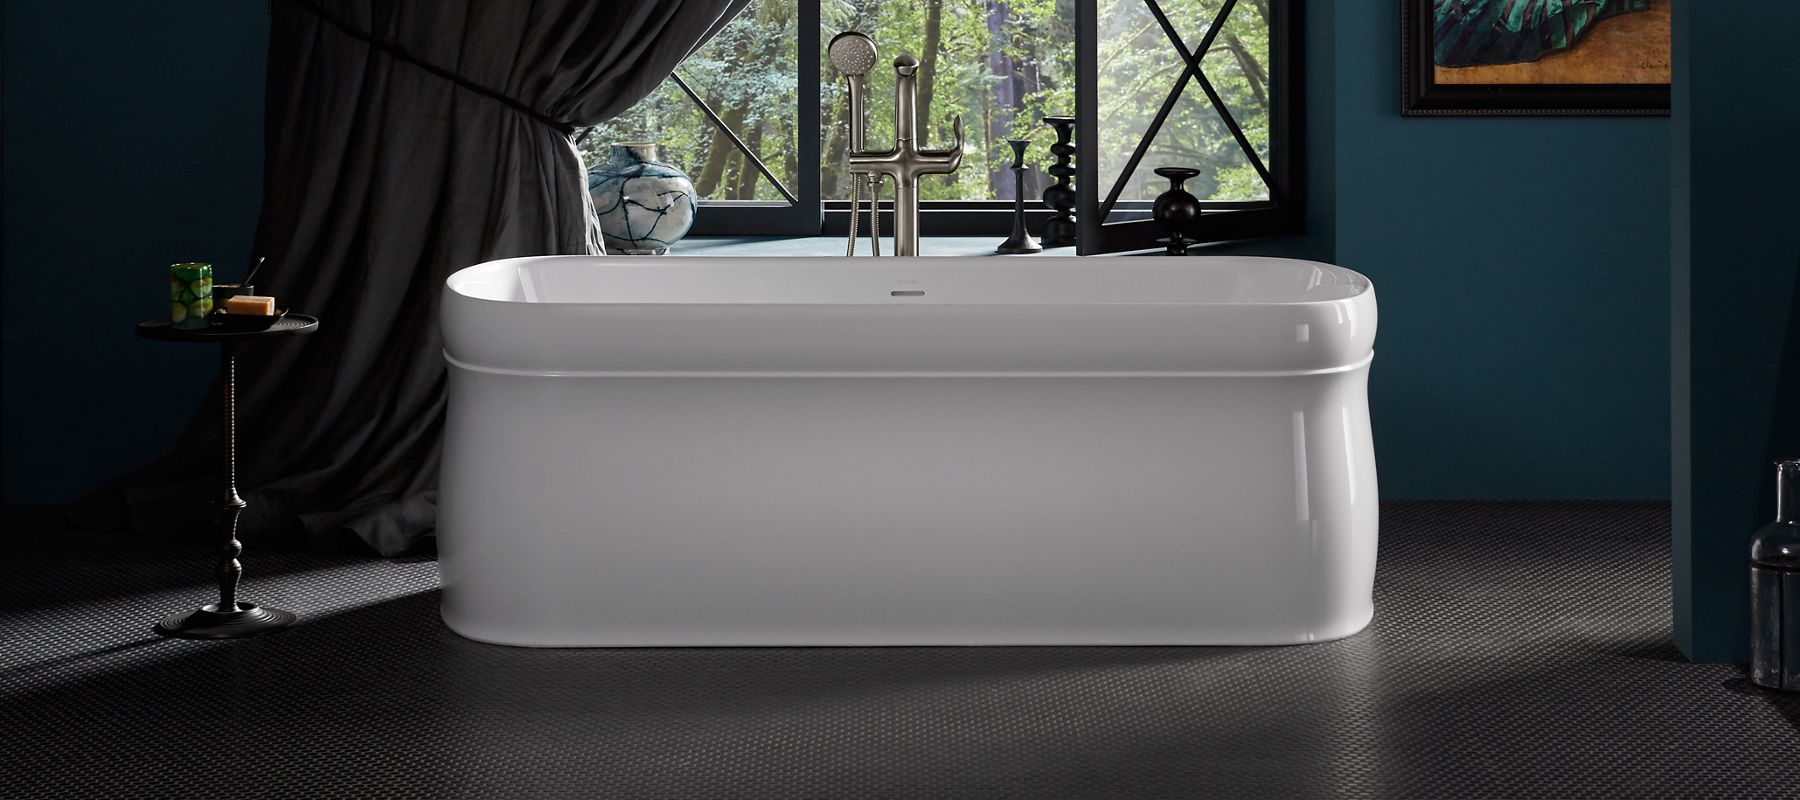 KOHLER Enameled Cast Iron Bathtubs, Whirlpool, Bathing Products ...